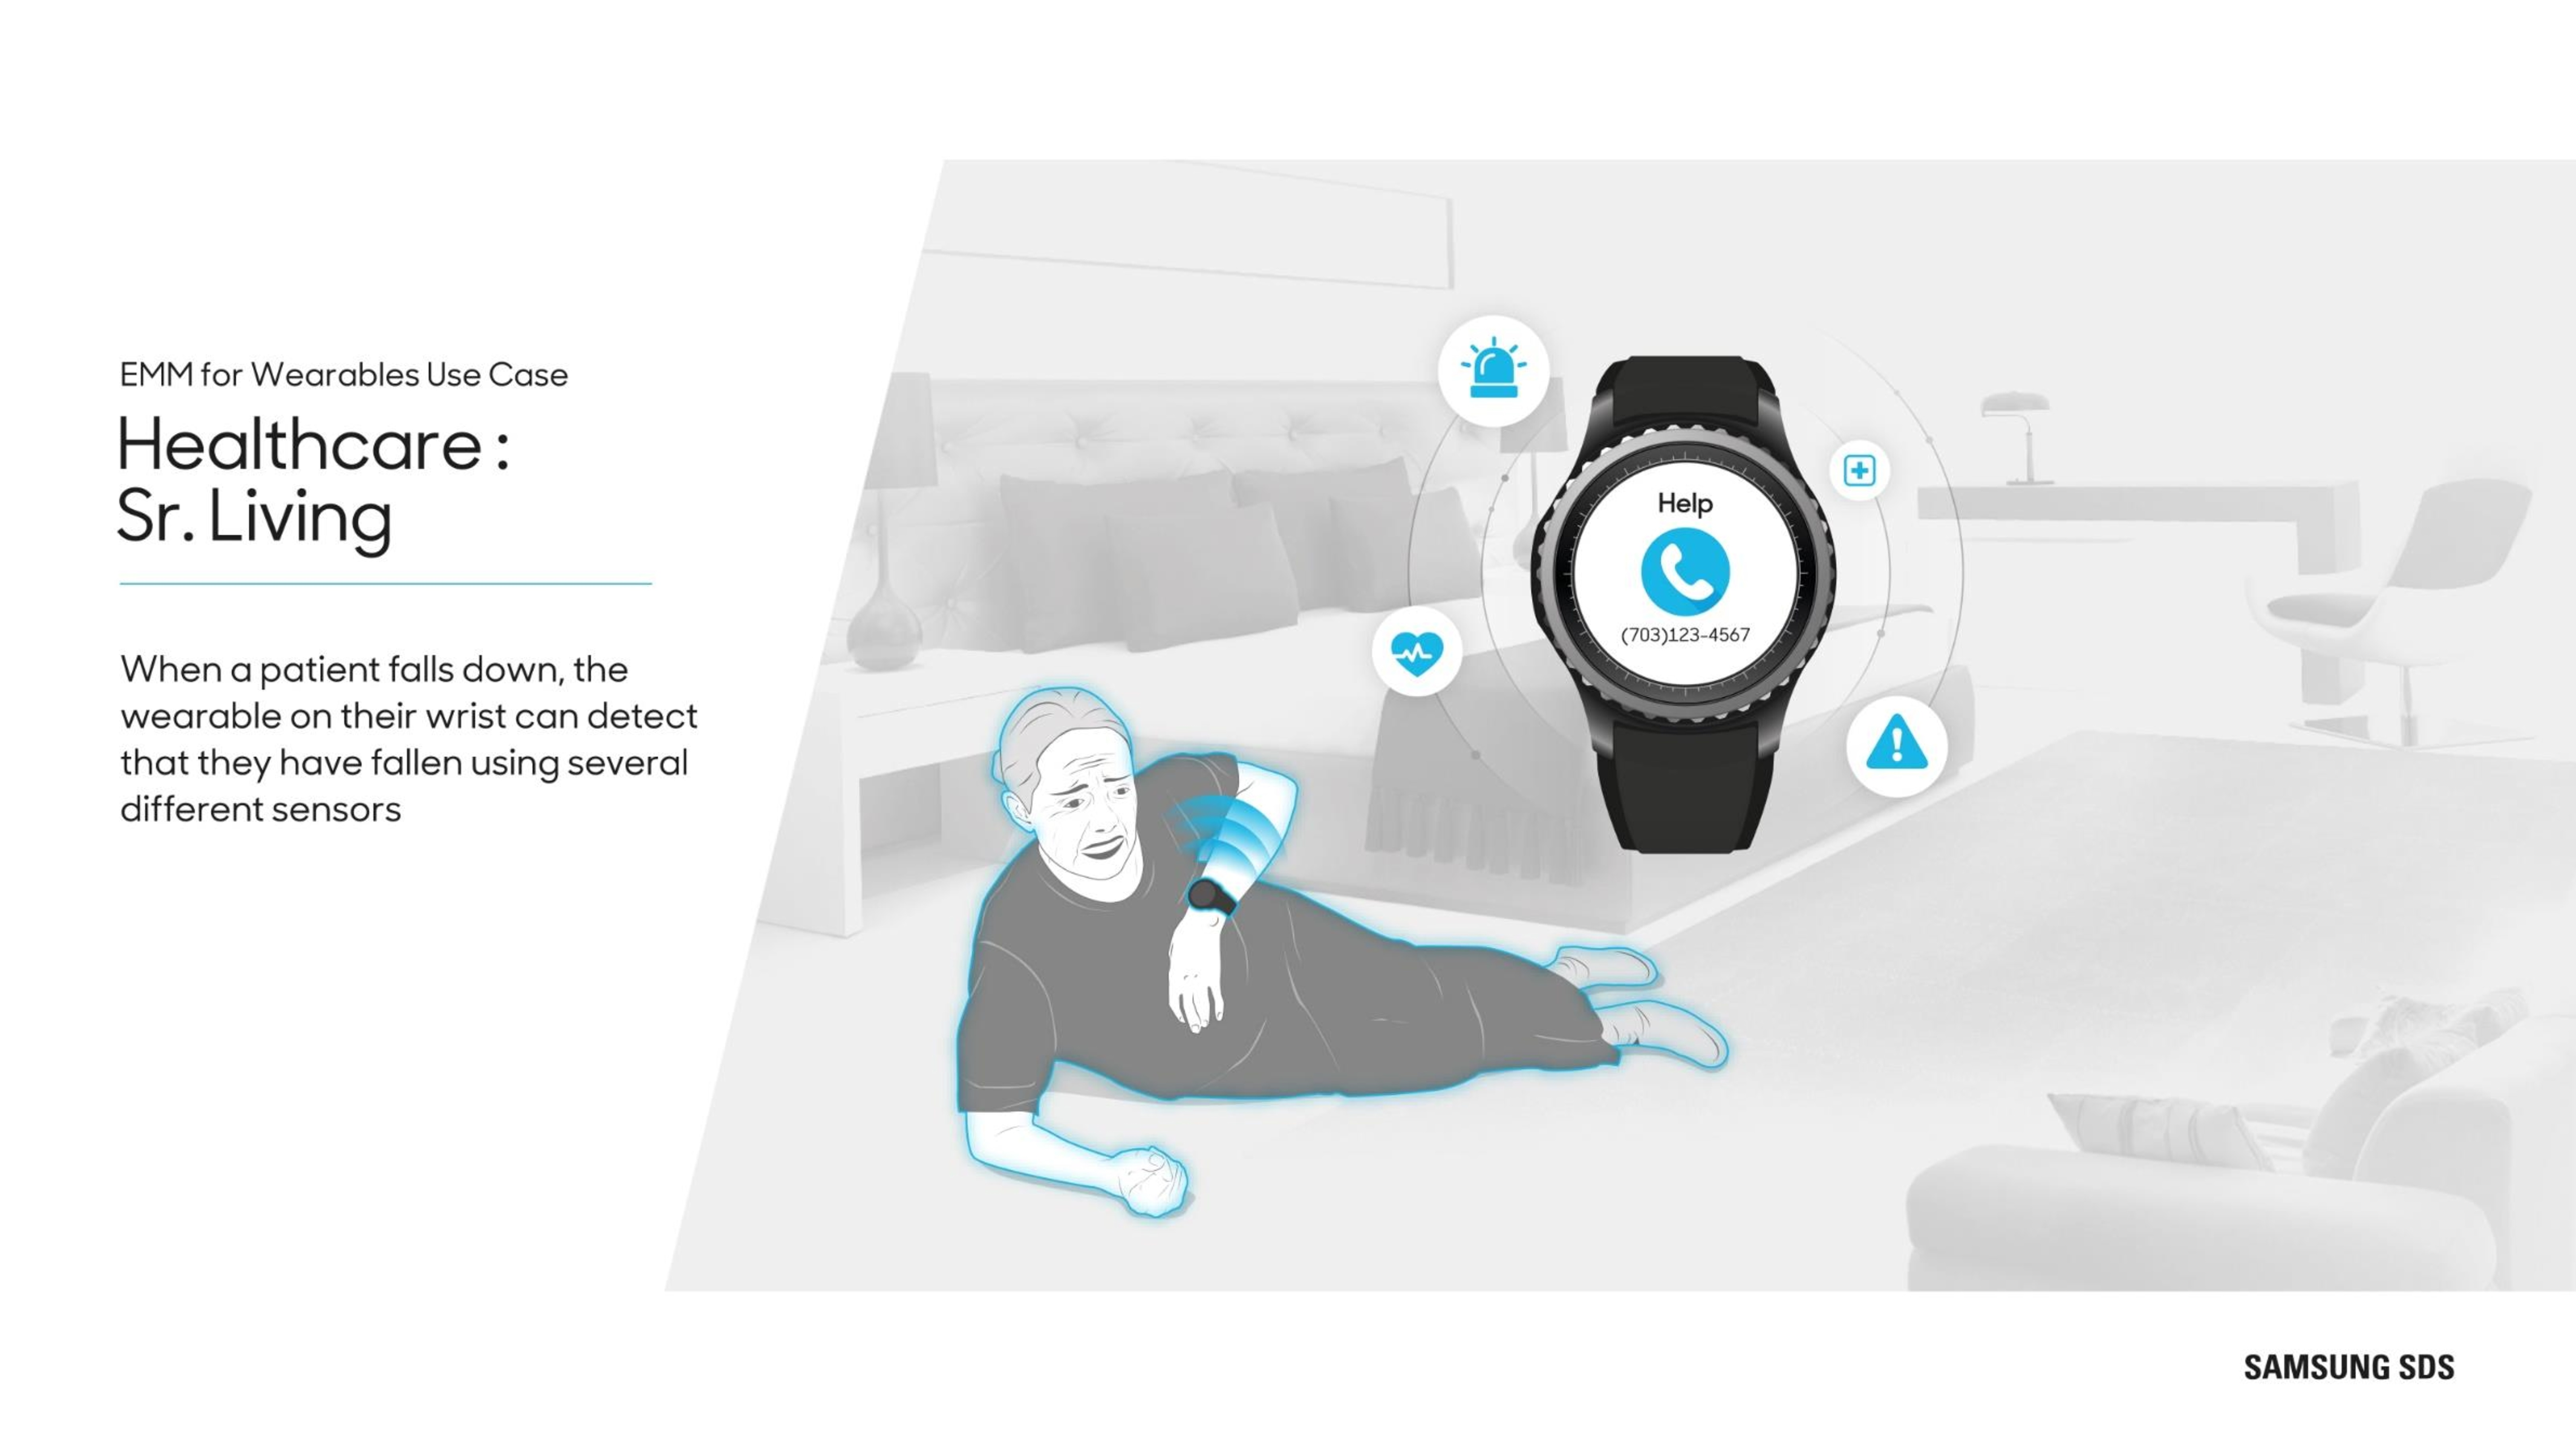 Wearables in Healthcare When a patient falls down, the wearable on their wrist can detect that they have fallen using several different sensors.